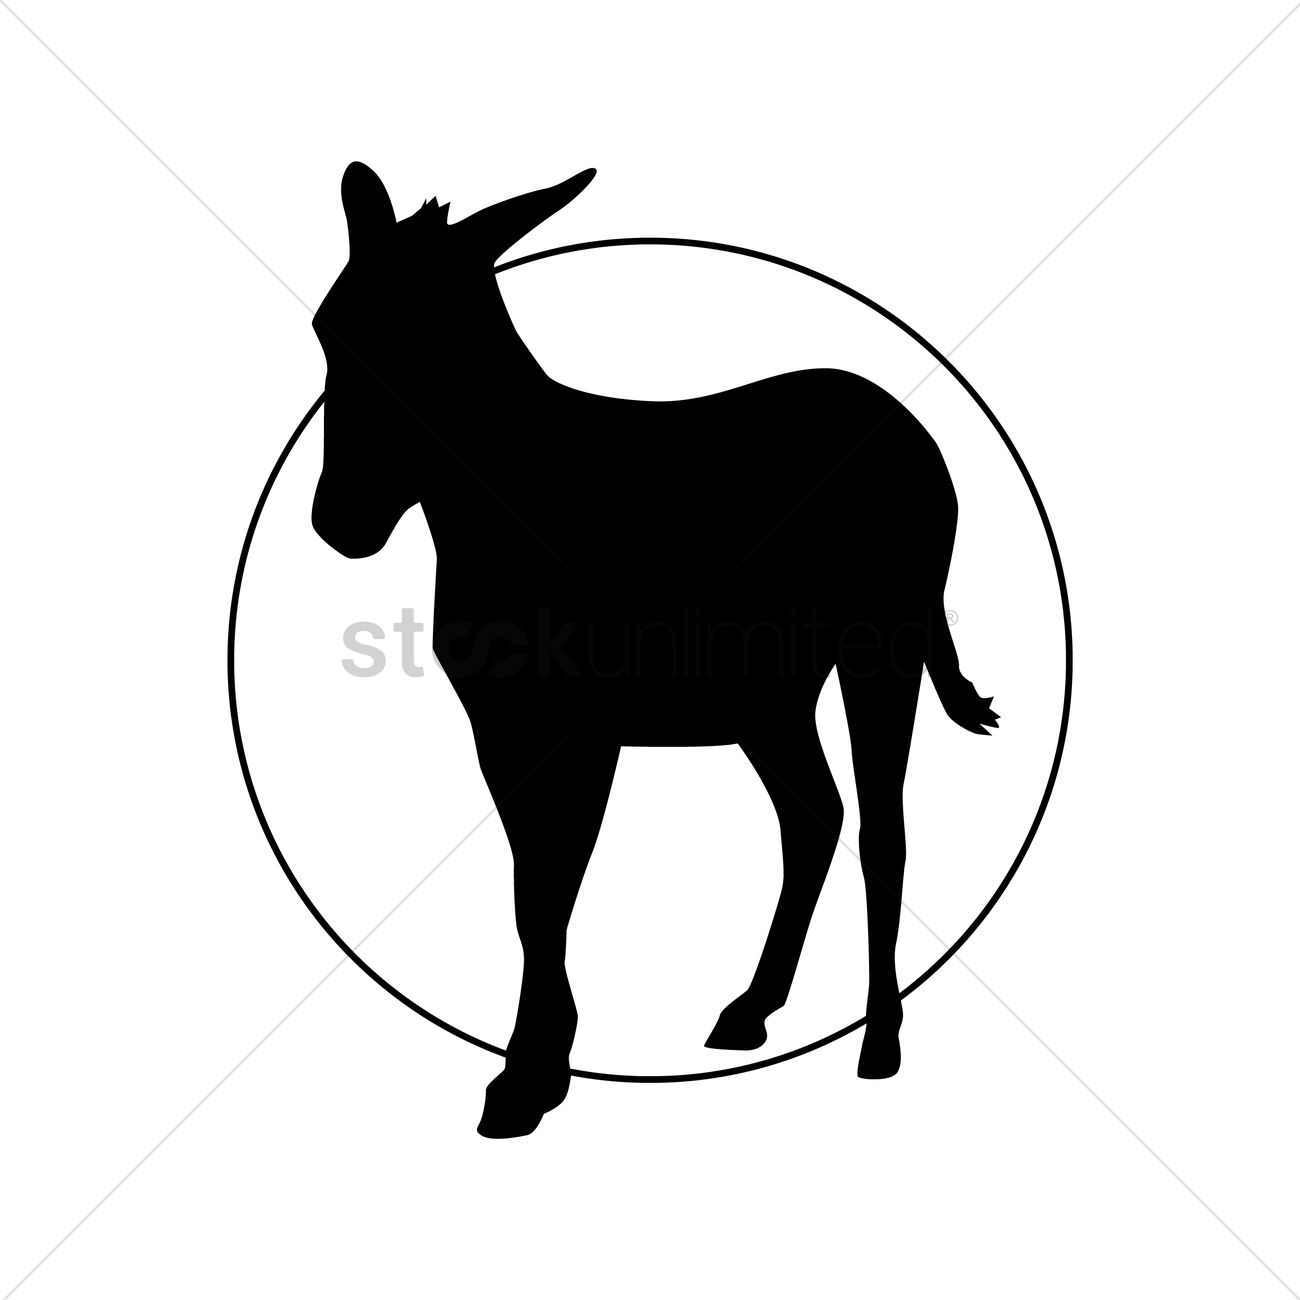 1300x1300 Silhouette Of Donkey Vector Image